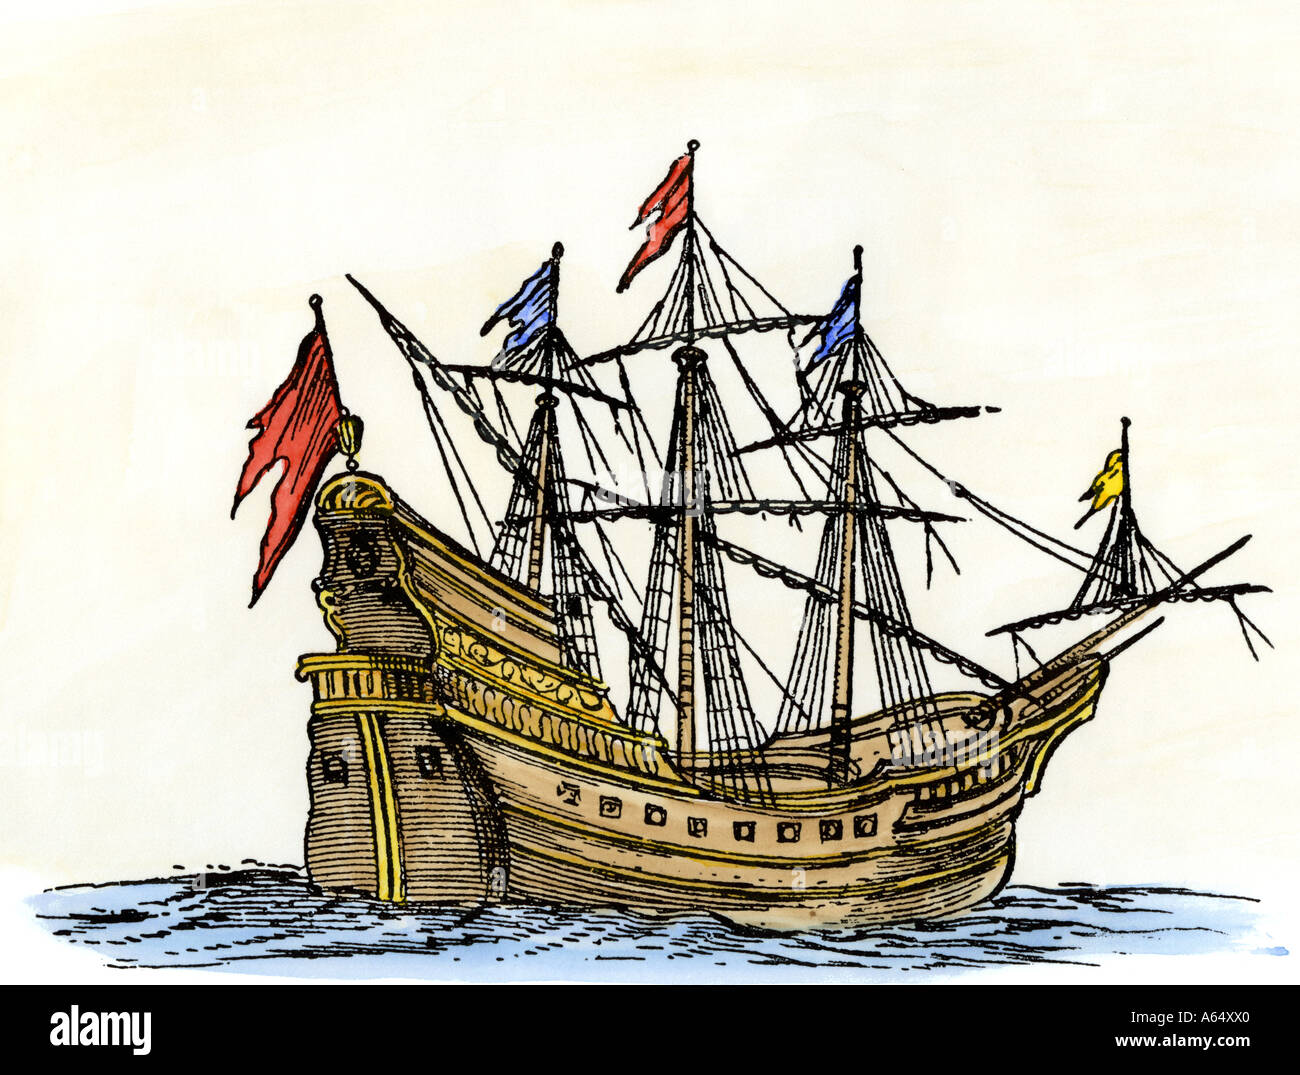 Sailing ship of the seventeenth century - Stock Image